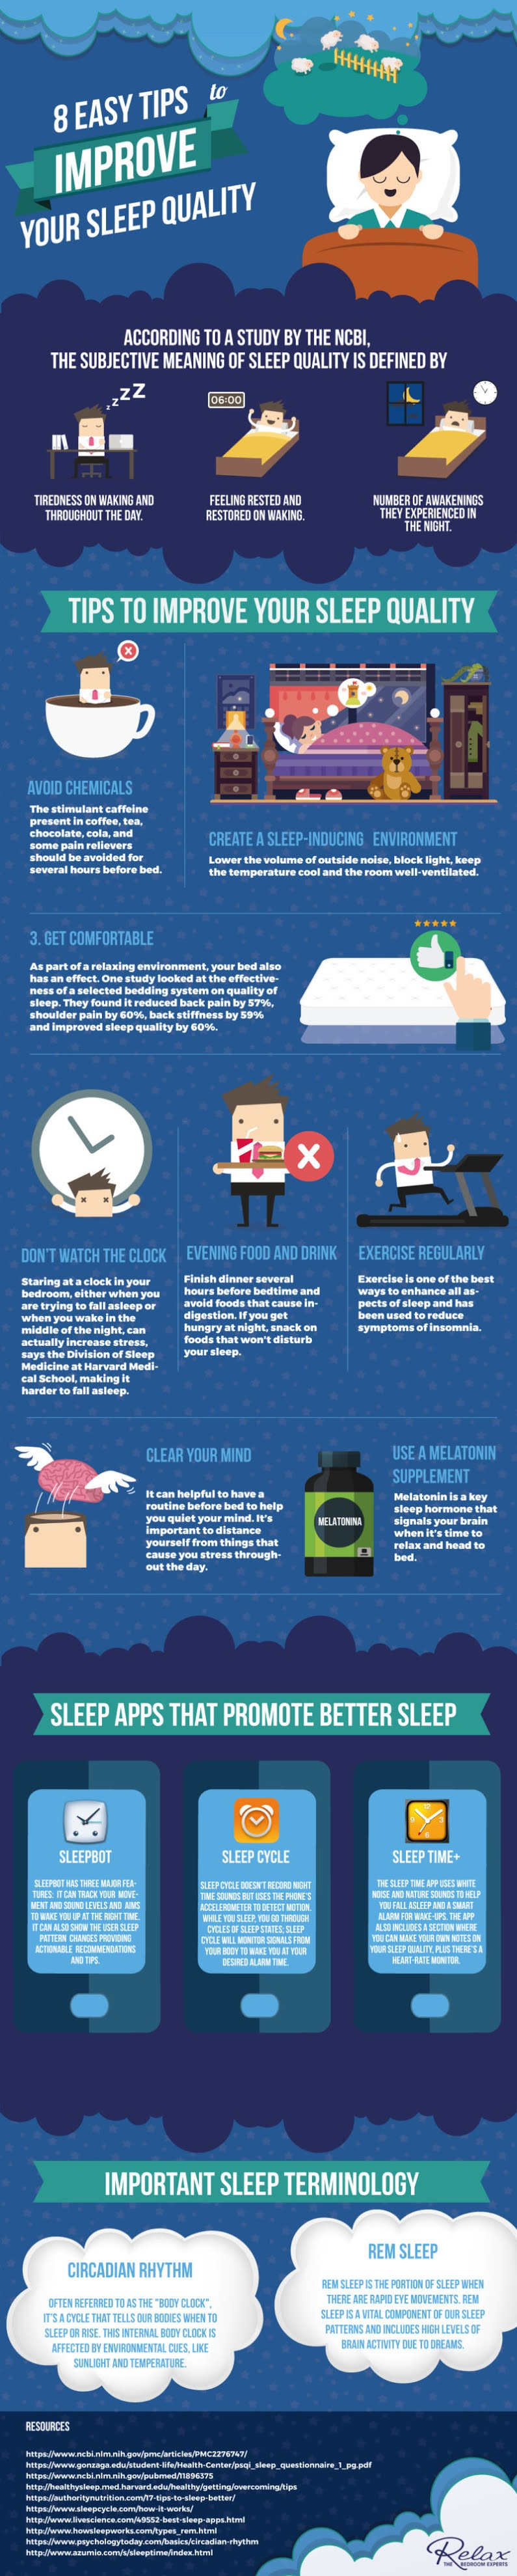 8 Easy Tips to Improve Your Sleep Quality #infographic